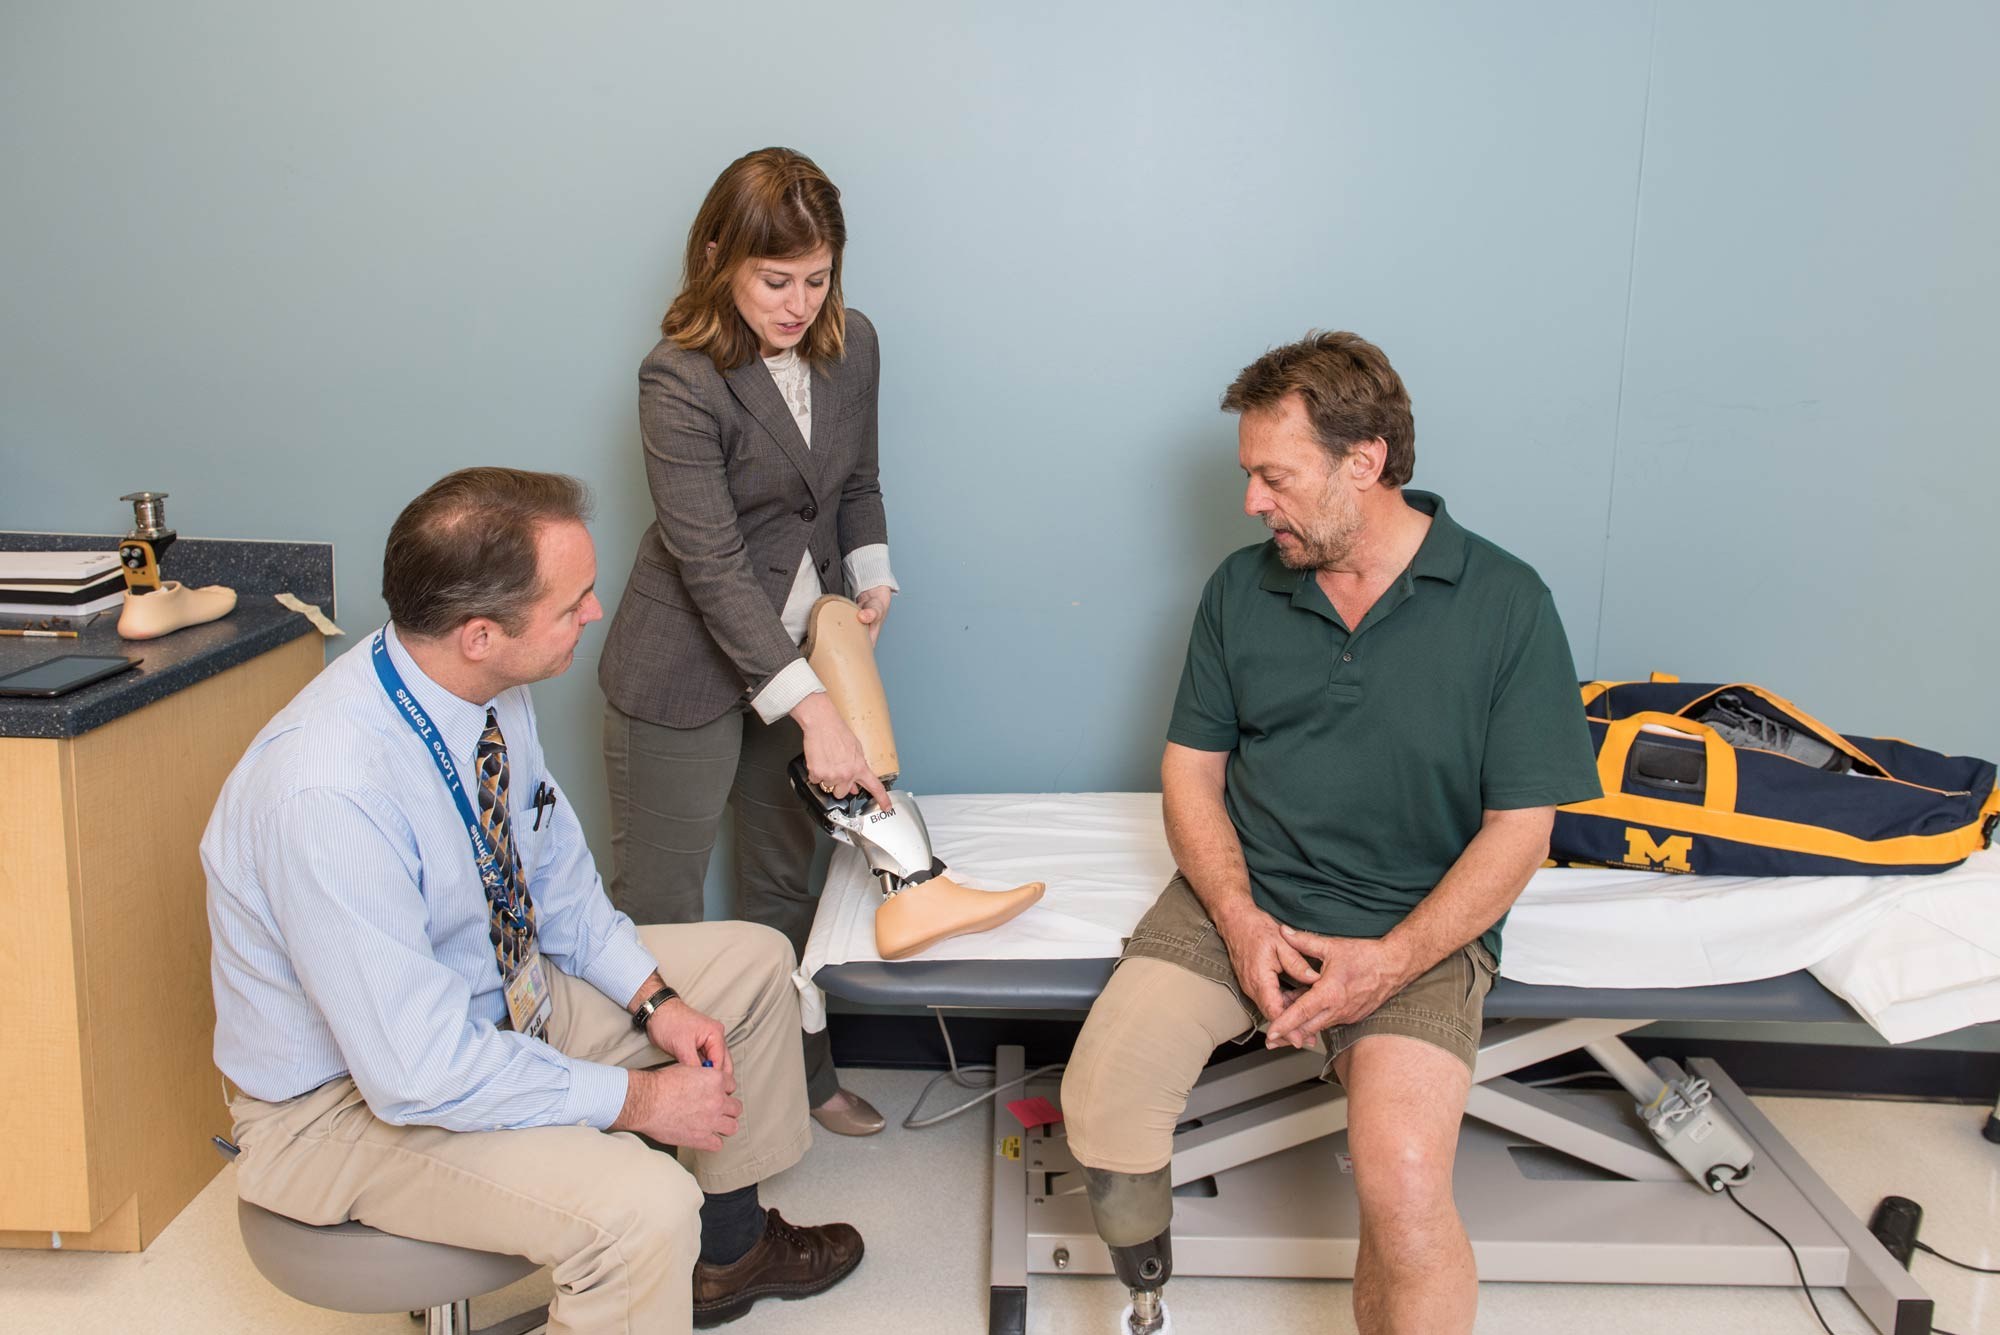 Jeffrey Wensman and Deanna Gates, assistant professor, Director of the Rehabilitation Biomechanics Laboratory at the University of Michigan help fit Roger Schulte (right) with a prosthesis. Image credit: Scott C. Soderberg, Michigan Photography